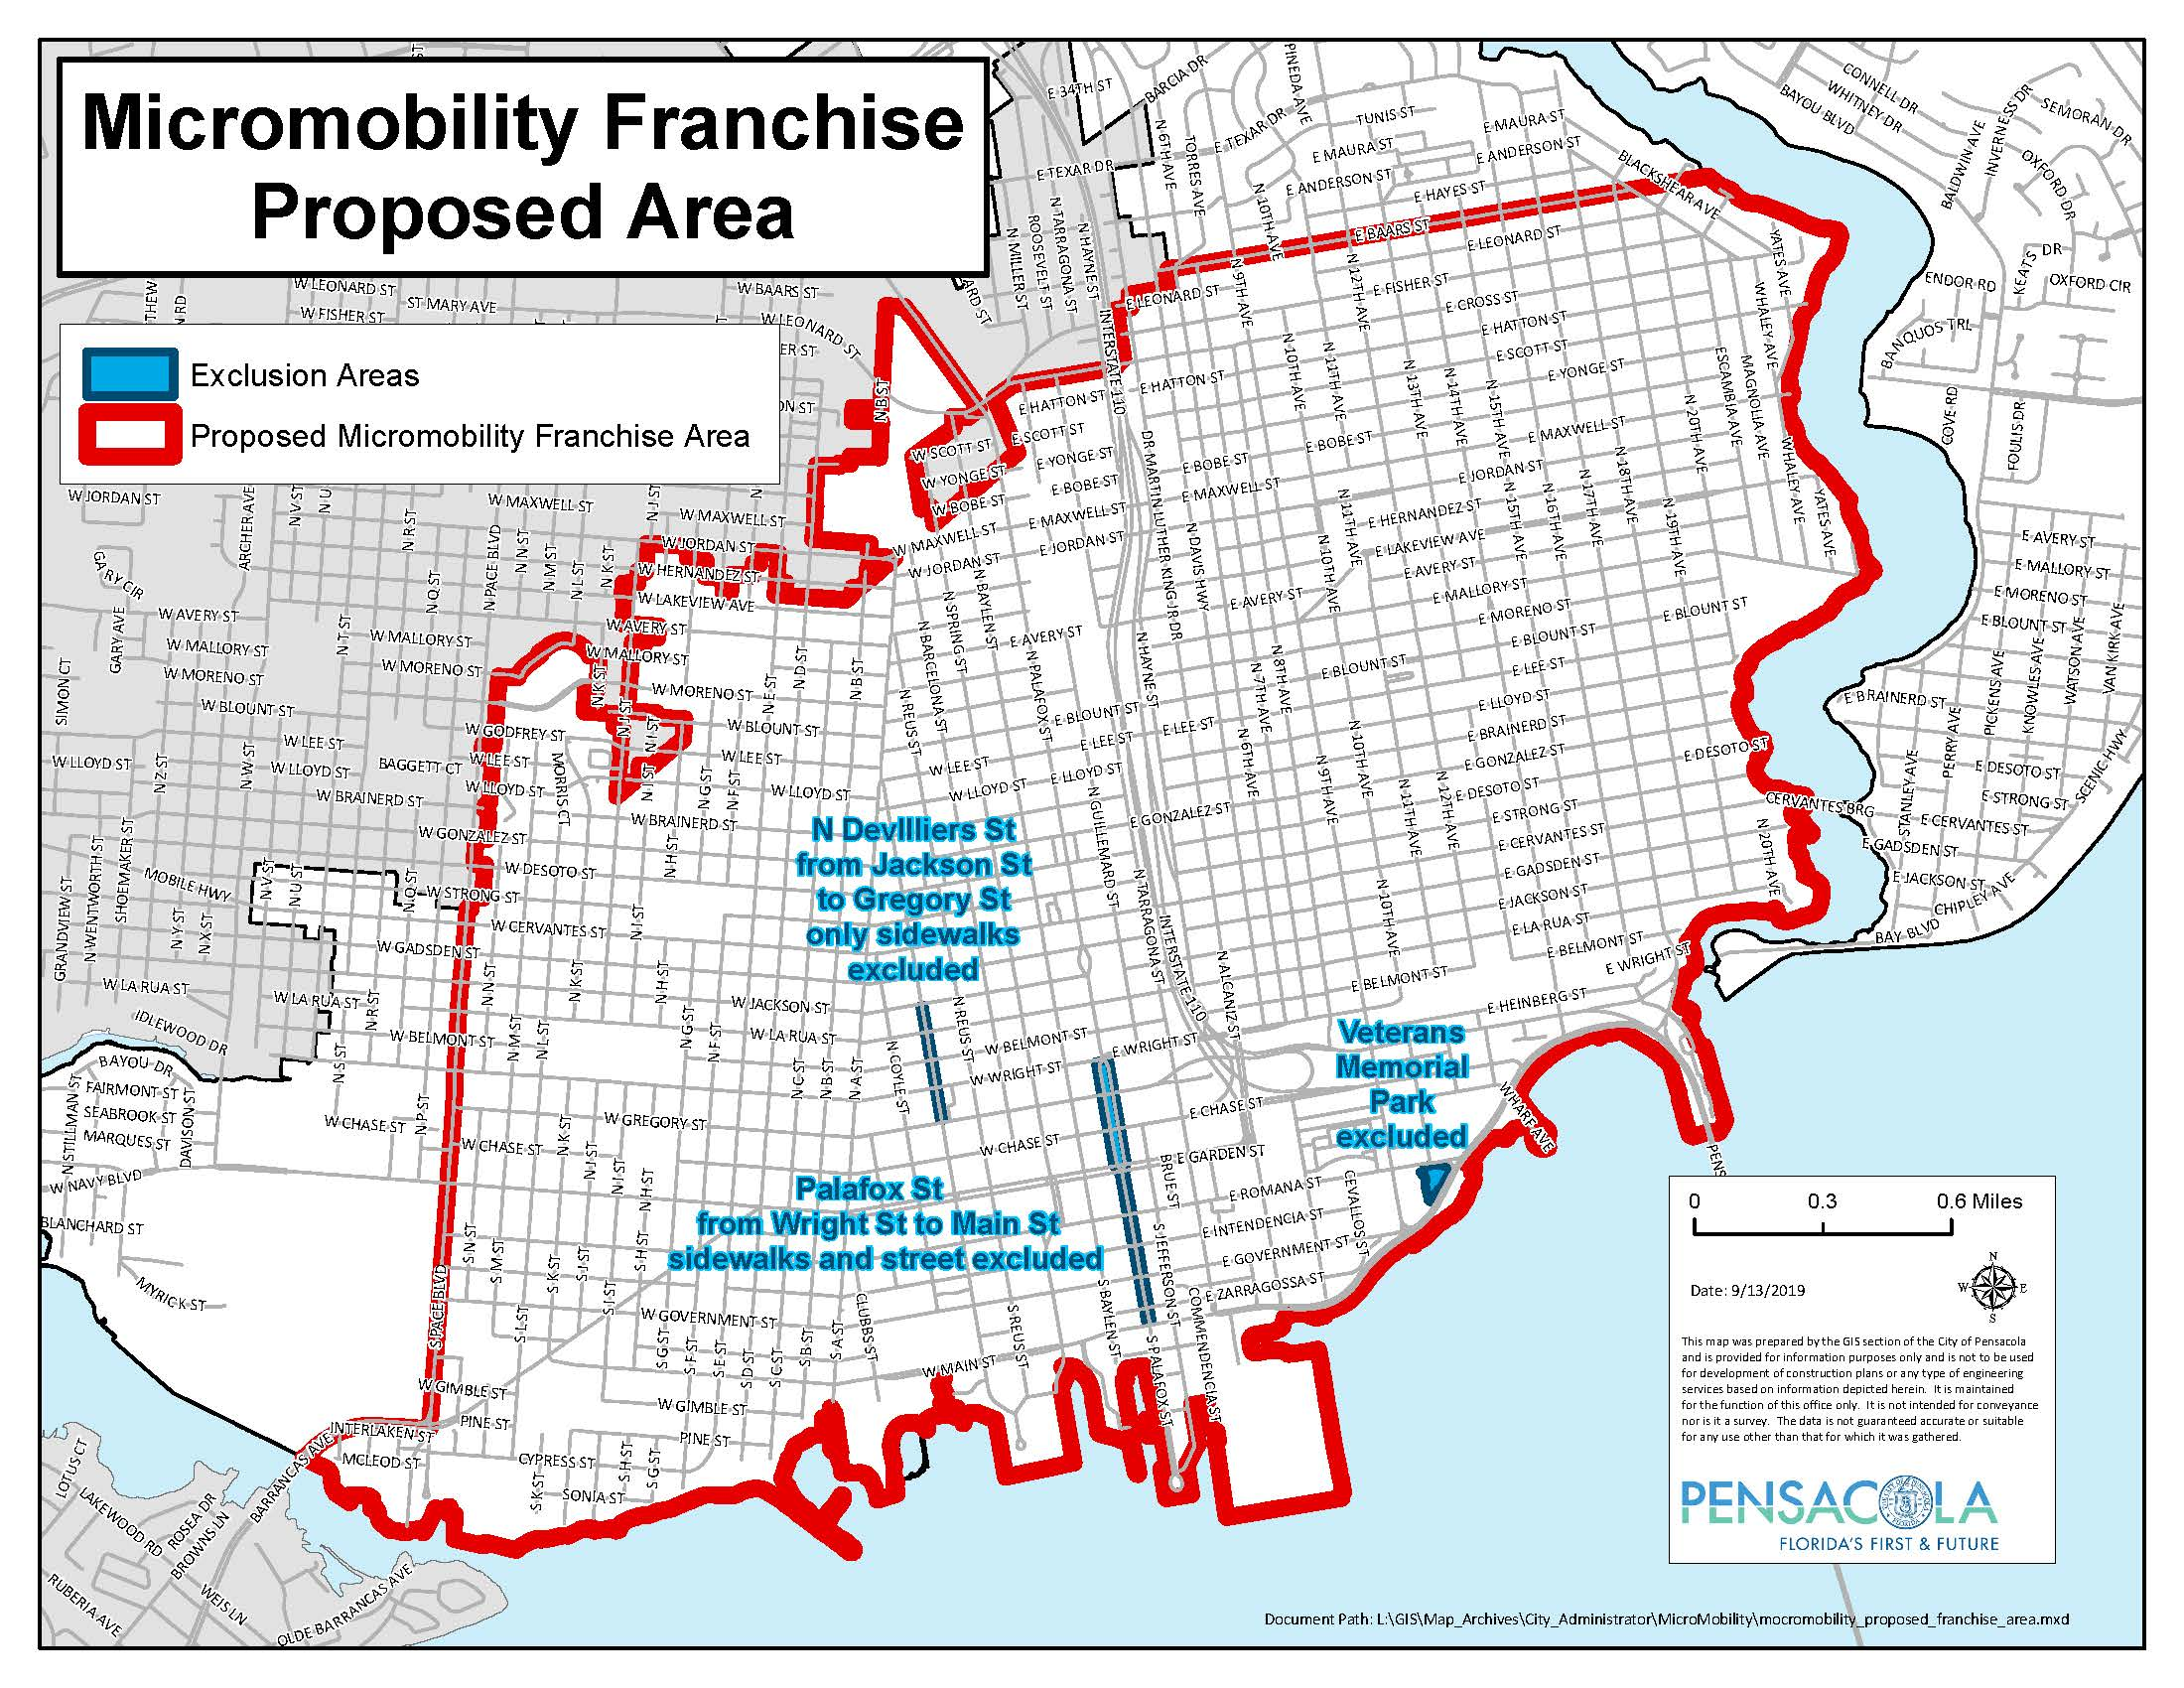 Micromobility Franchise Proposed Area map